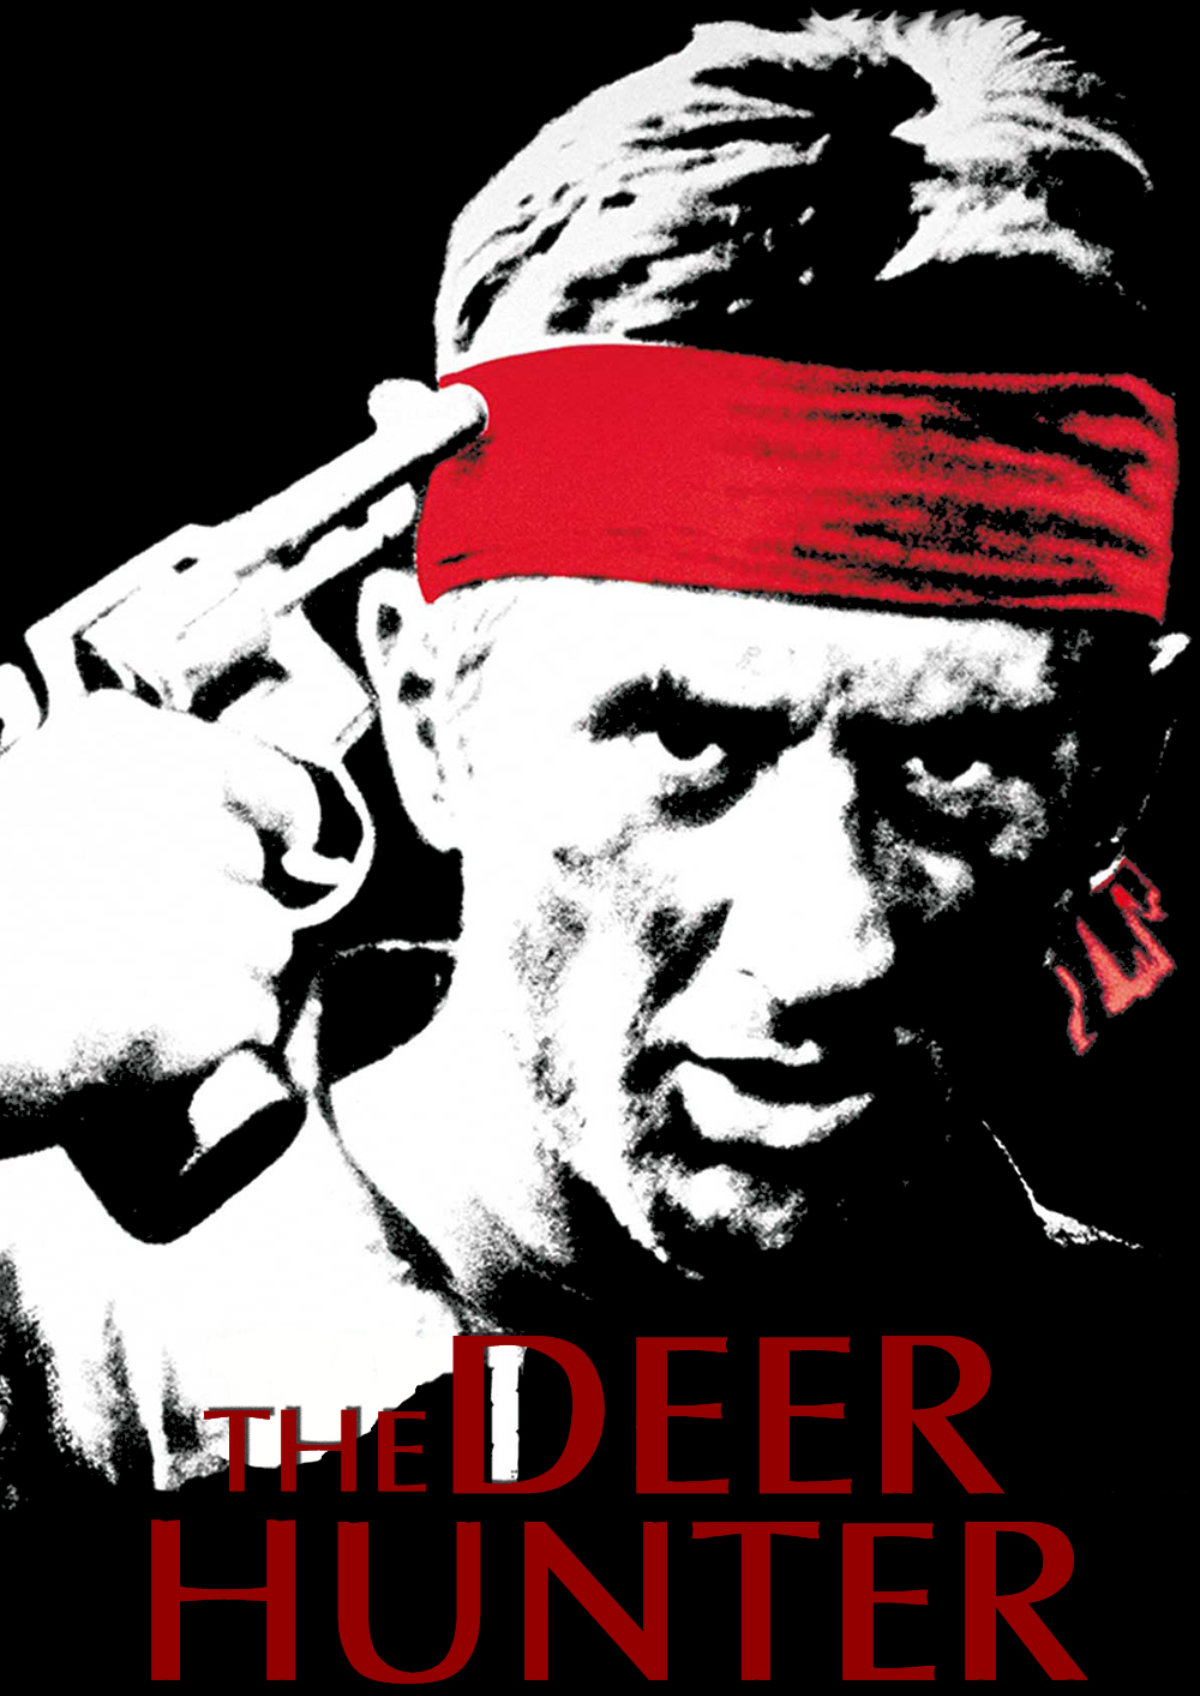 'The Deer Hunter' movie poster